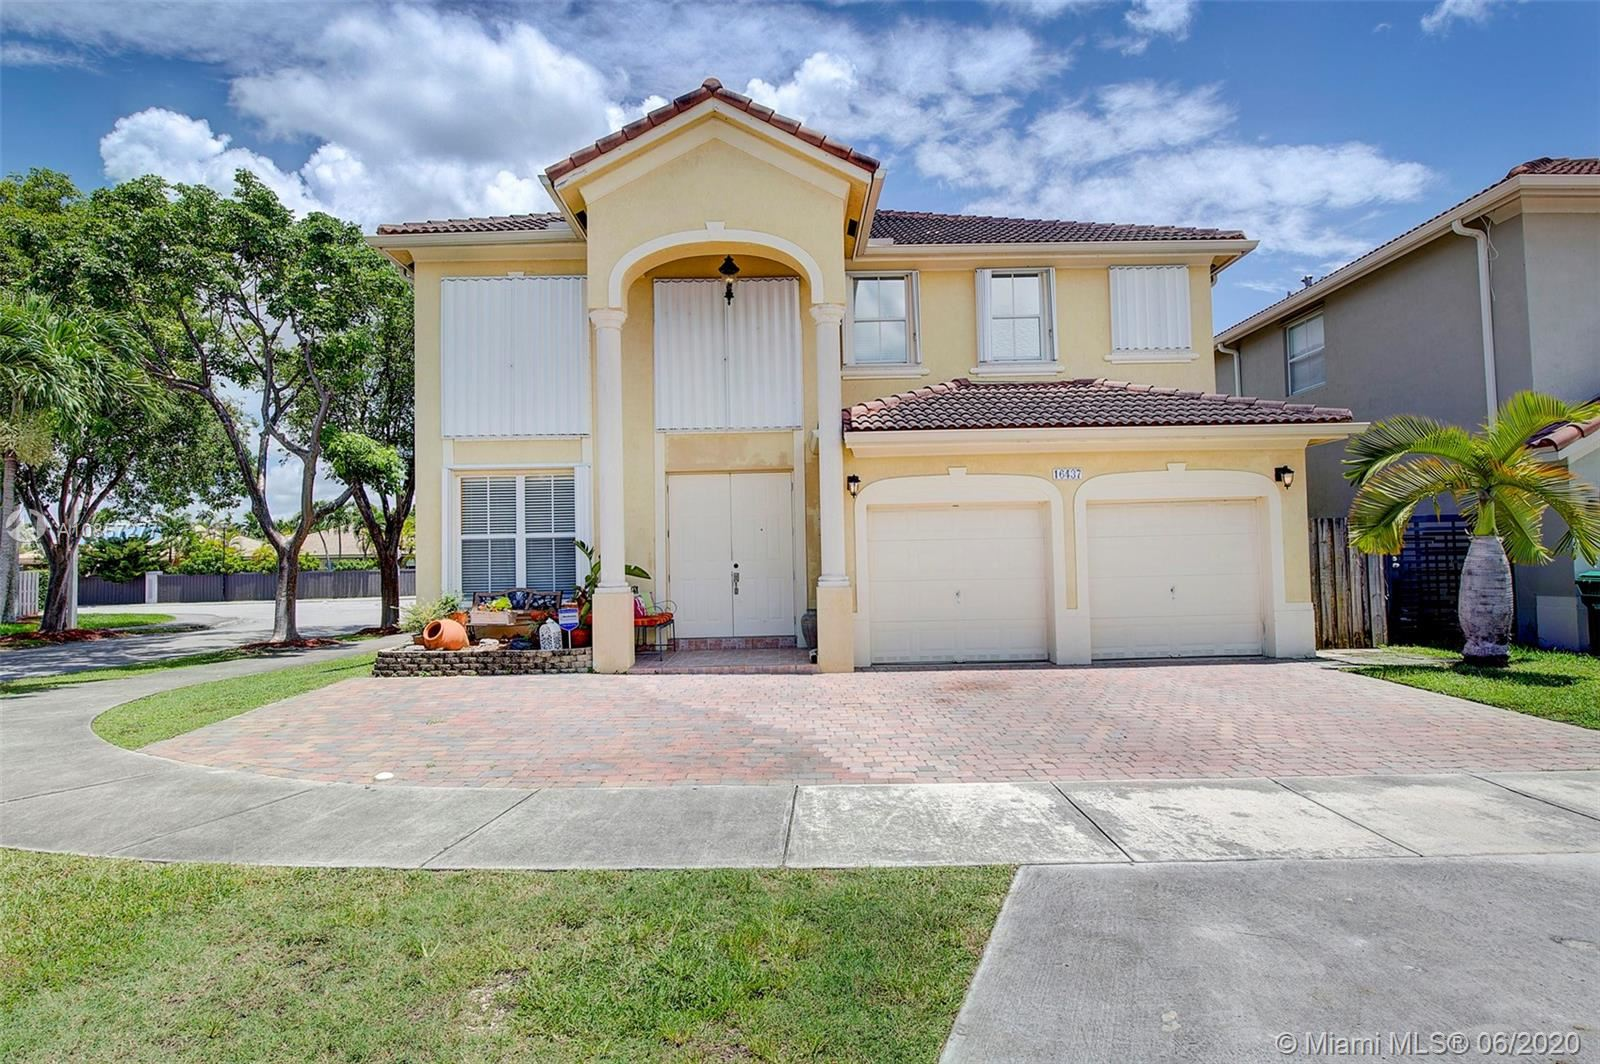 16437 SW 78th Ter, Miami, FL 33193 - #: A10857277